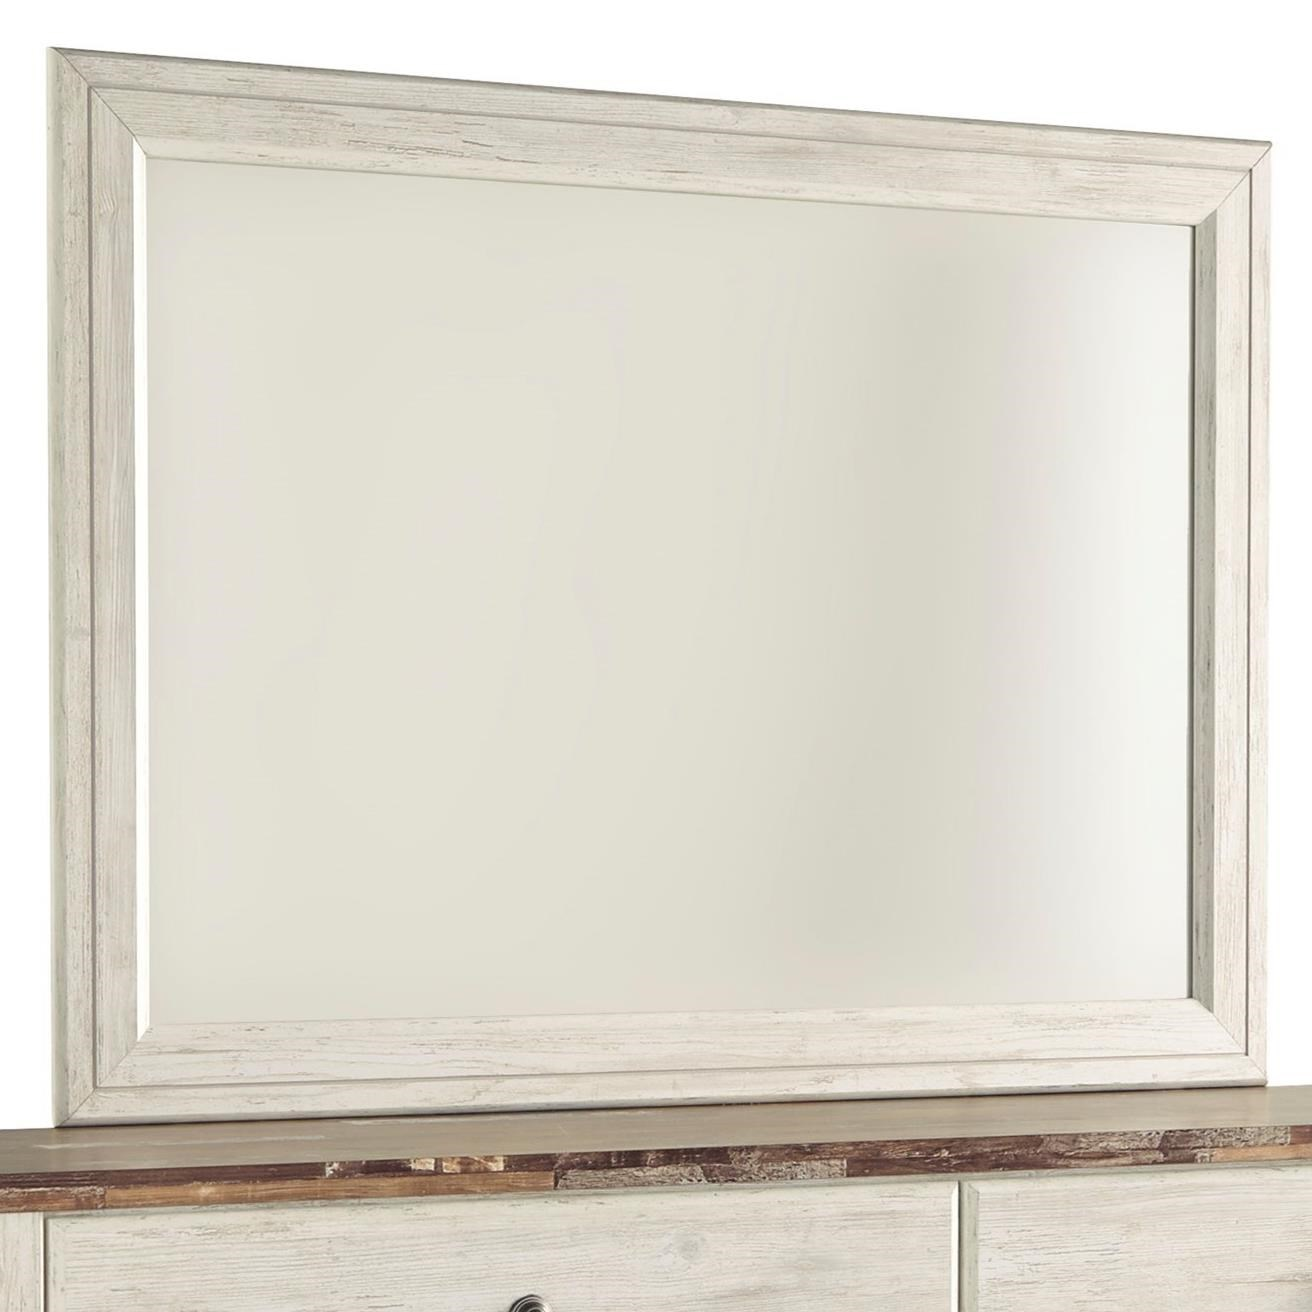 Willowton Bedroom Mirror by Ashley (Signature Design) at Johnny Janosik